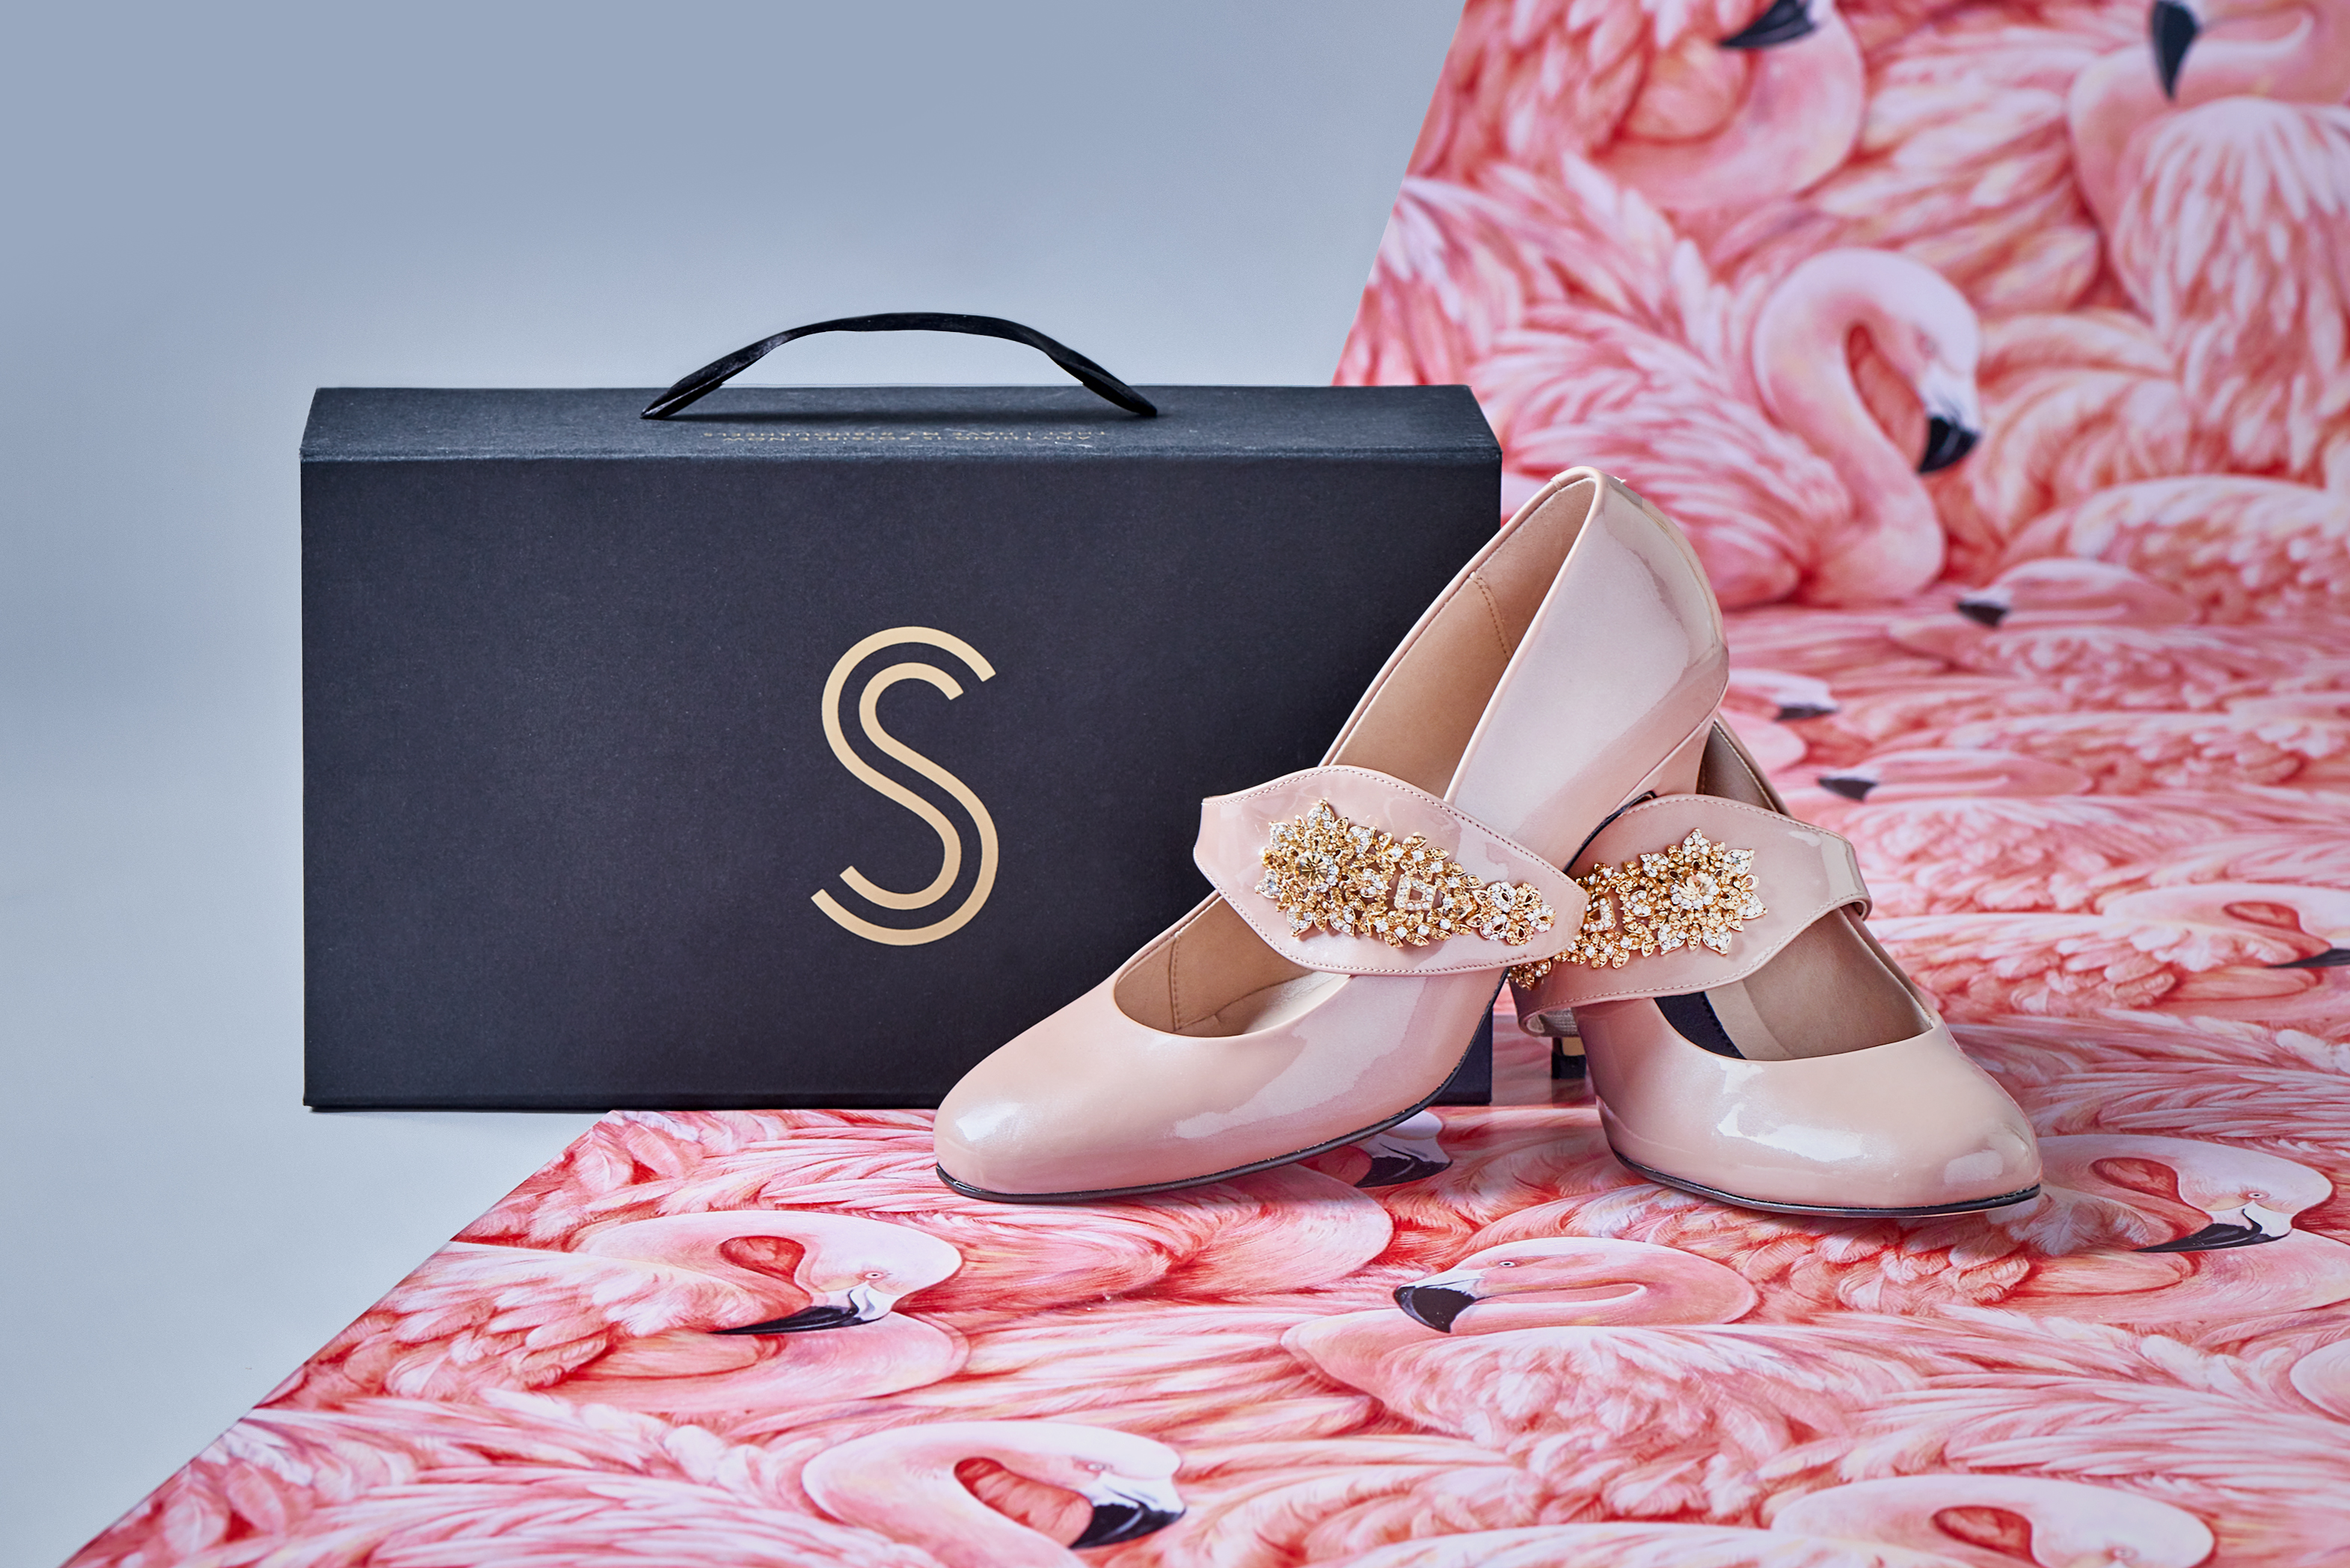 Shoes By Shaherazad Review